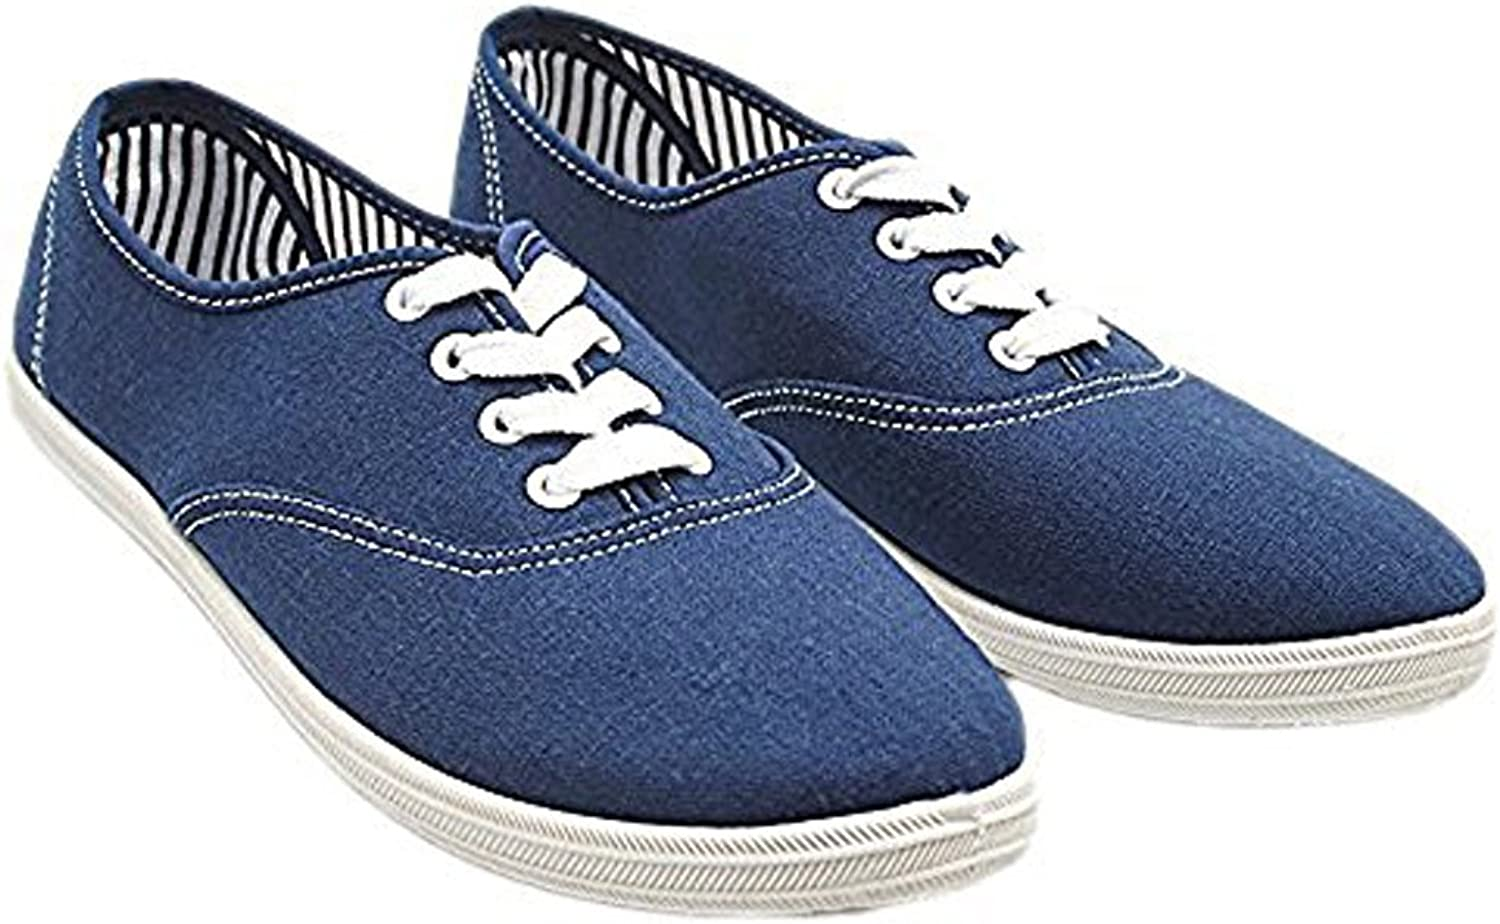 Charles Albert Women's Canvas Lace up Sneakers shoes